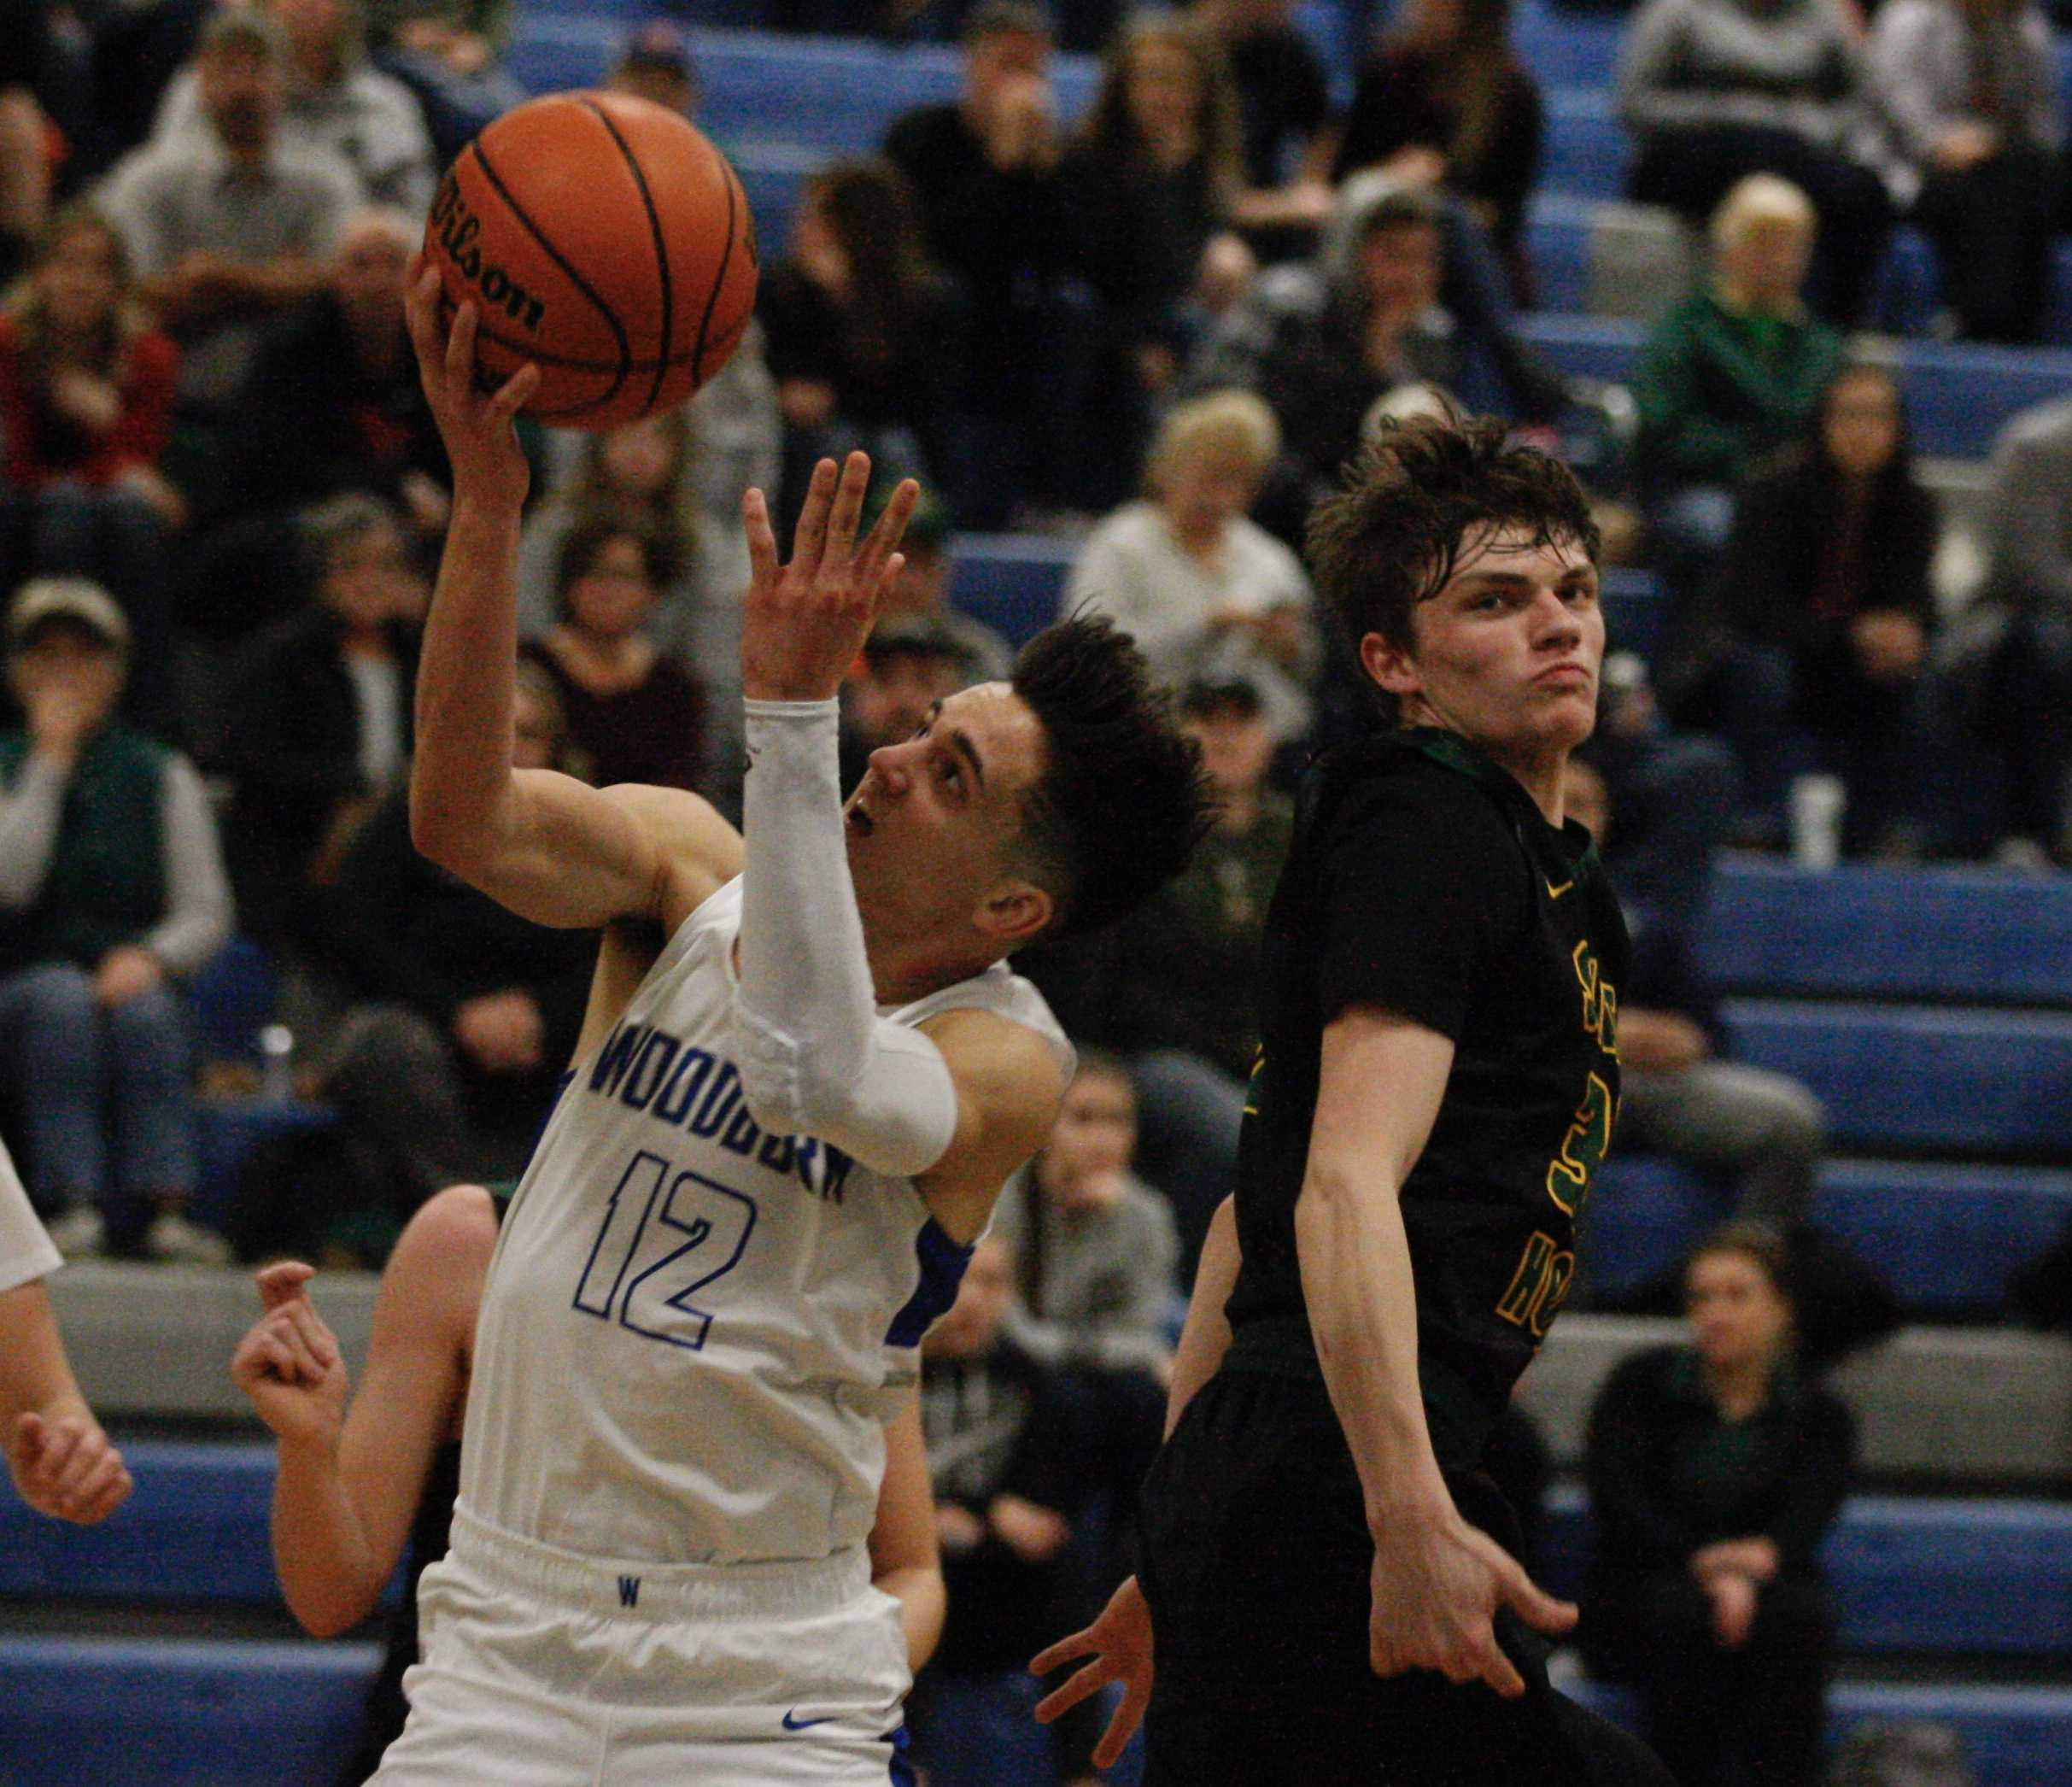 Woodburn's R.J. Veliz corkscrews past Sweet Home's Jake Swanson for two of his game high 23 points. (Photo by Norm Maves Jr.)